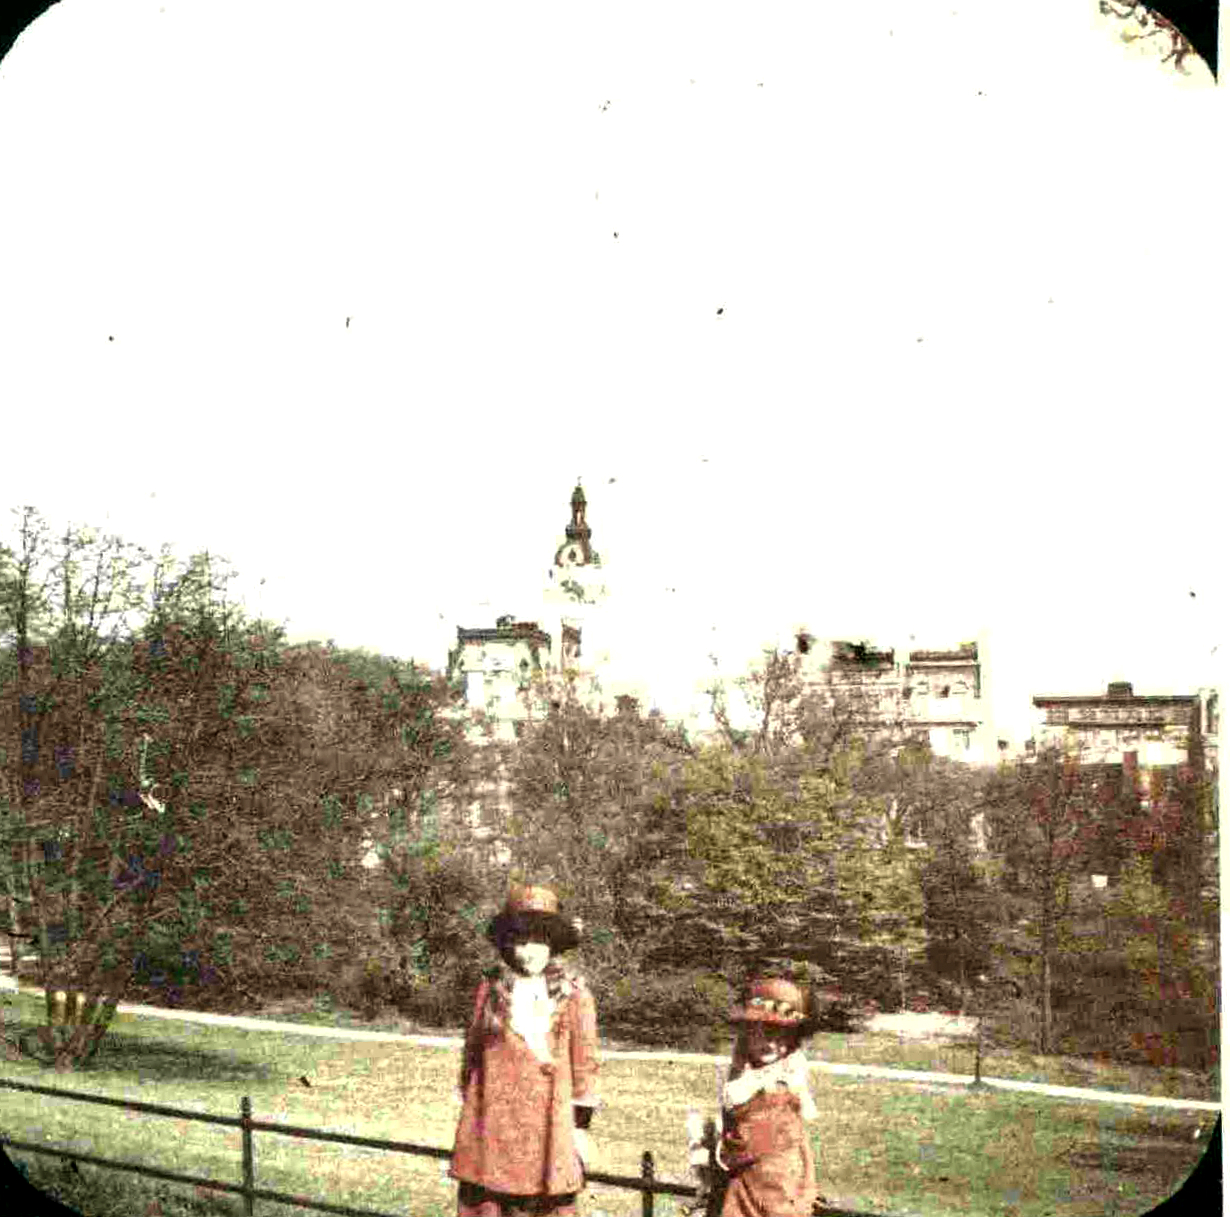 The sisters in Central Park with the Clark mansion tower in background.